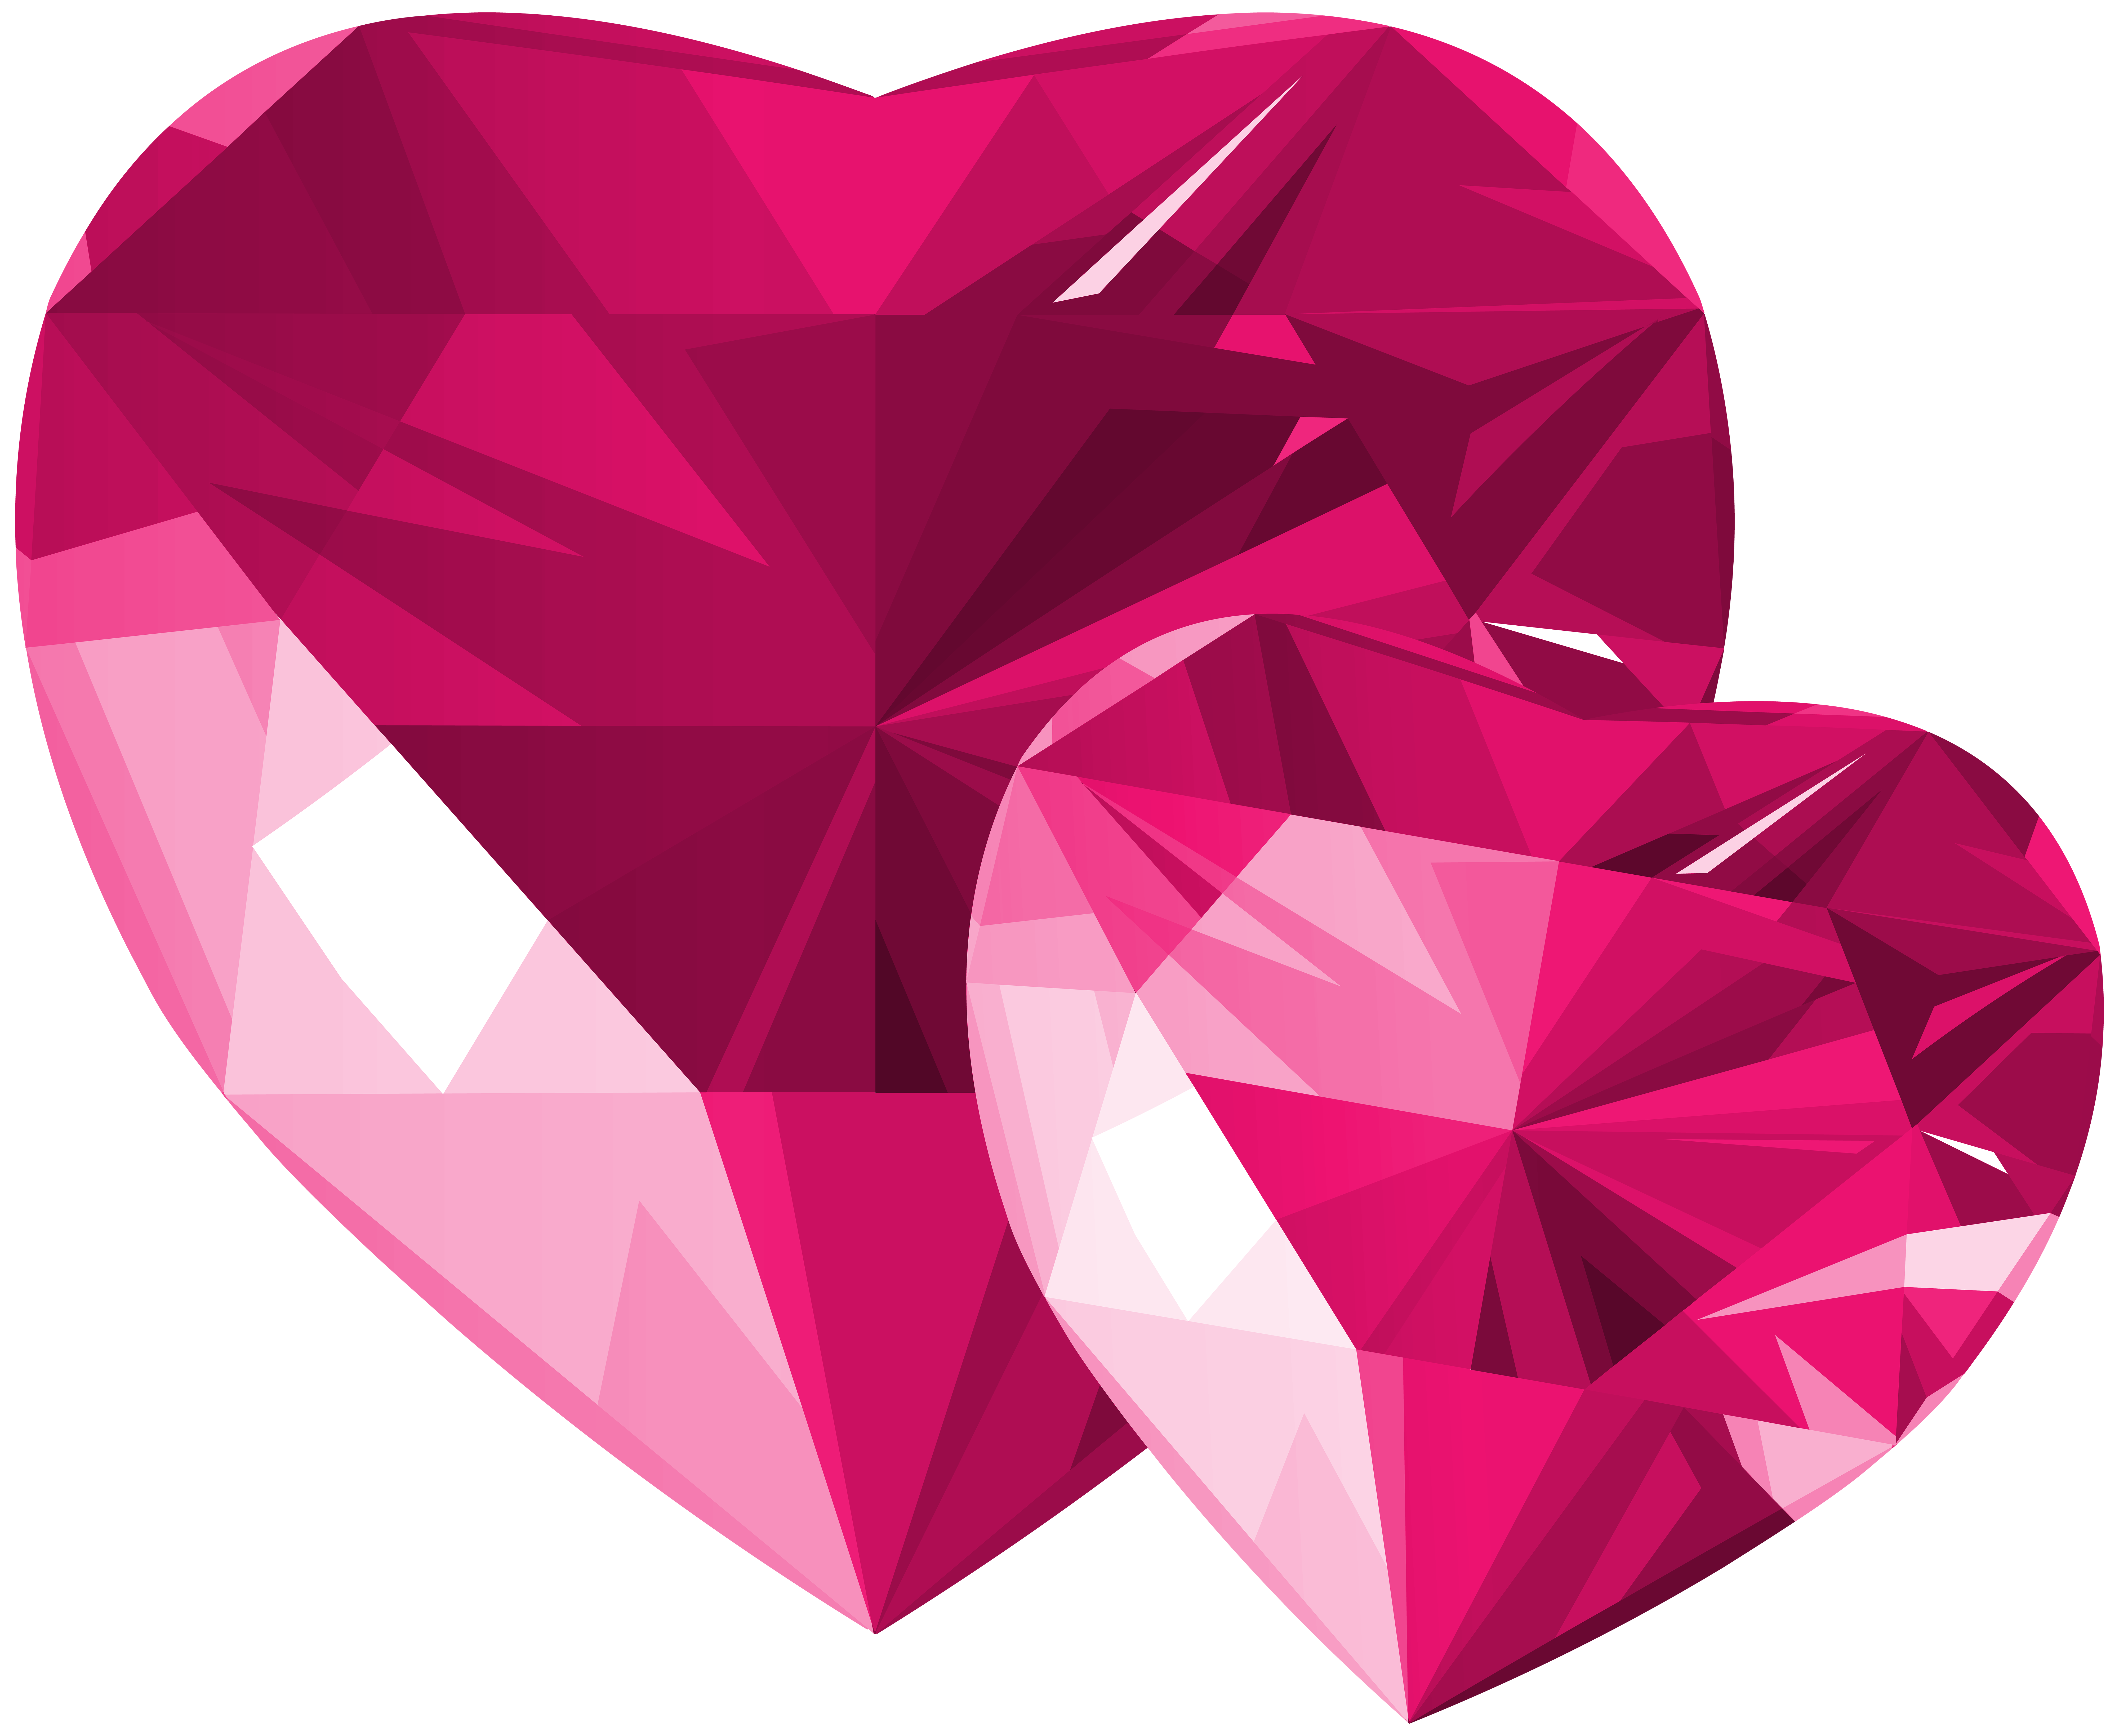 Heart handcuffs clipart jpg royalty free download Diamond Hearts Pink Transparent PNG Clip Art | Gallery Yopriceville ... jpg royalty free download